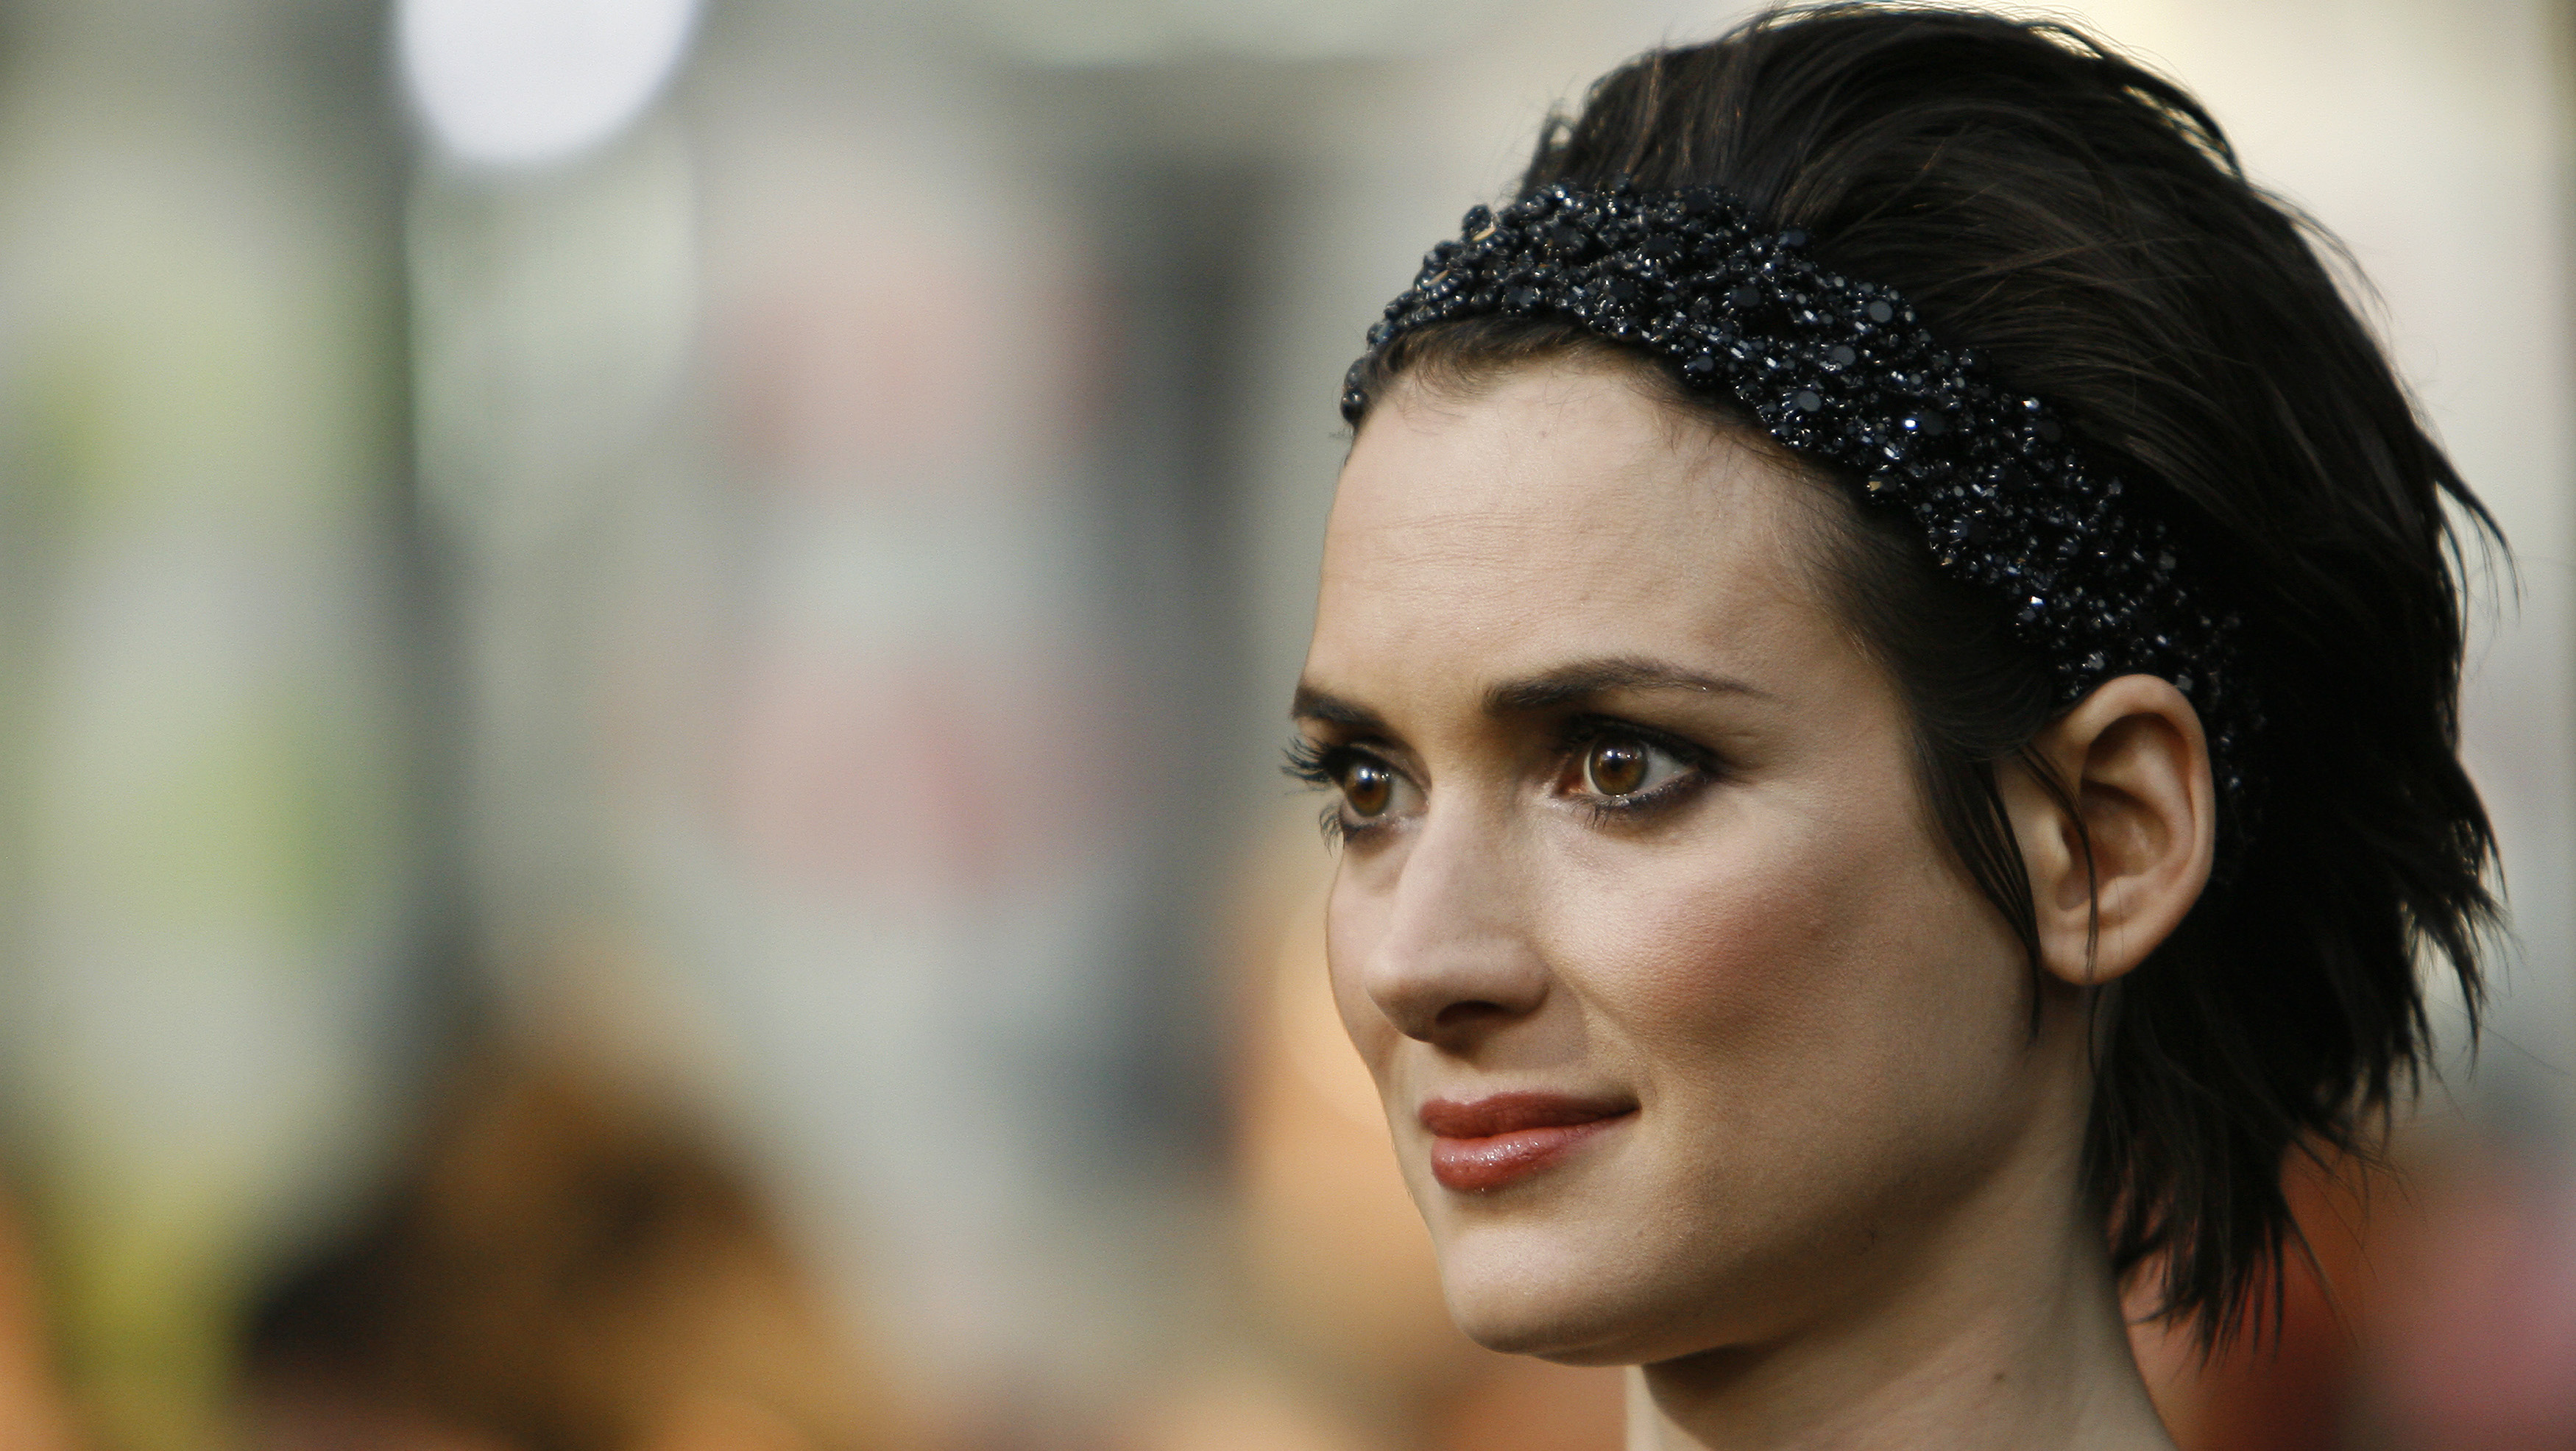 Winona Ryder poses at the premiere of the movie Star Trek at the Grauman's Chinese theatre in Hollywood